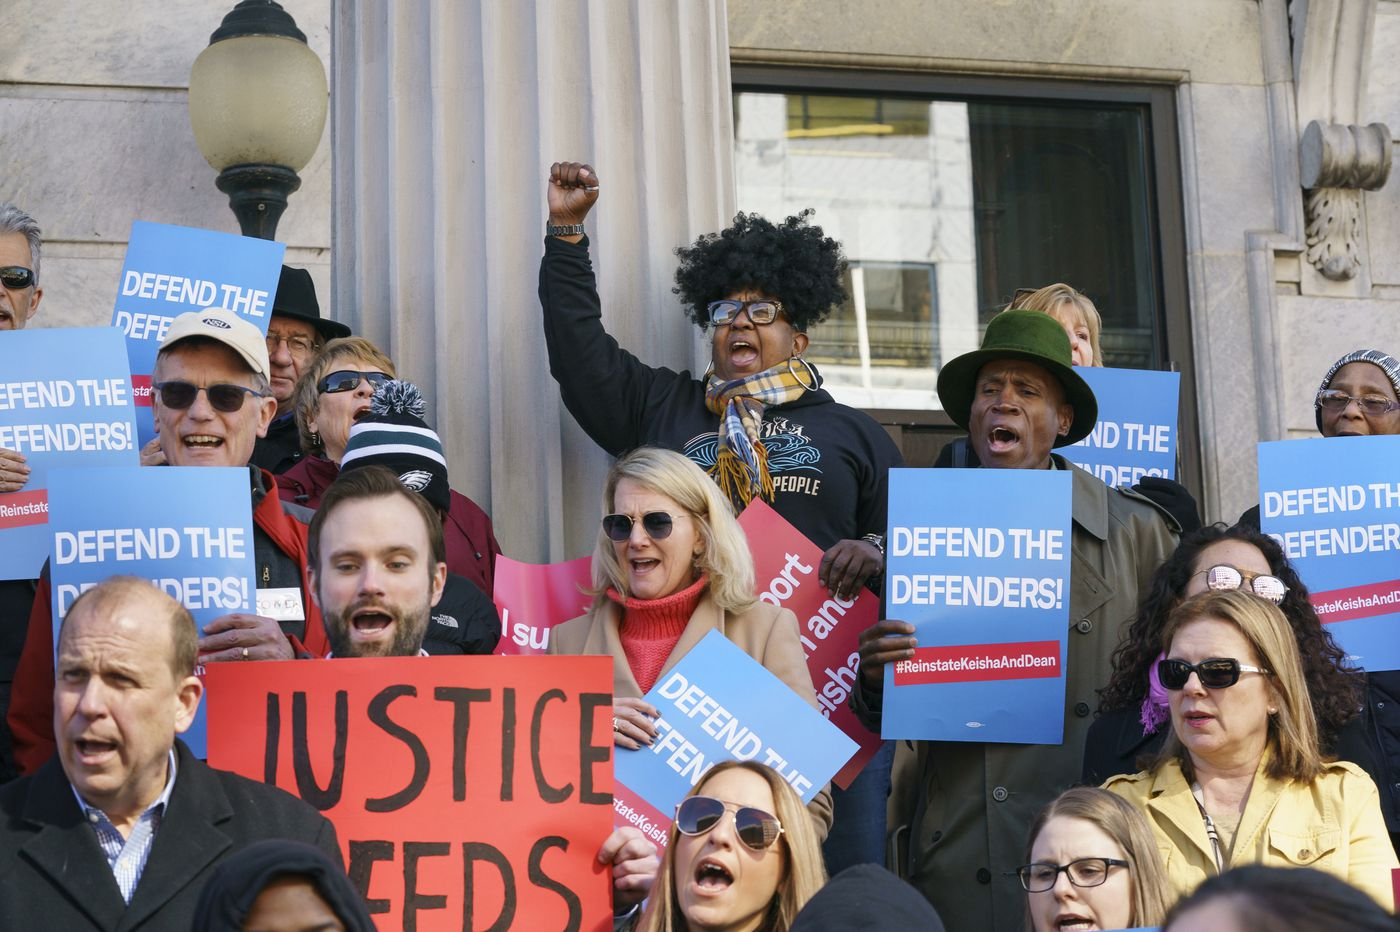 Protesters descend on Montgomery County commissioners meeting to oppose public defenders' firings